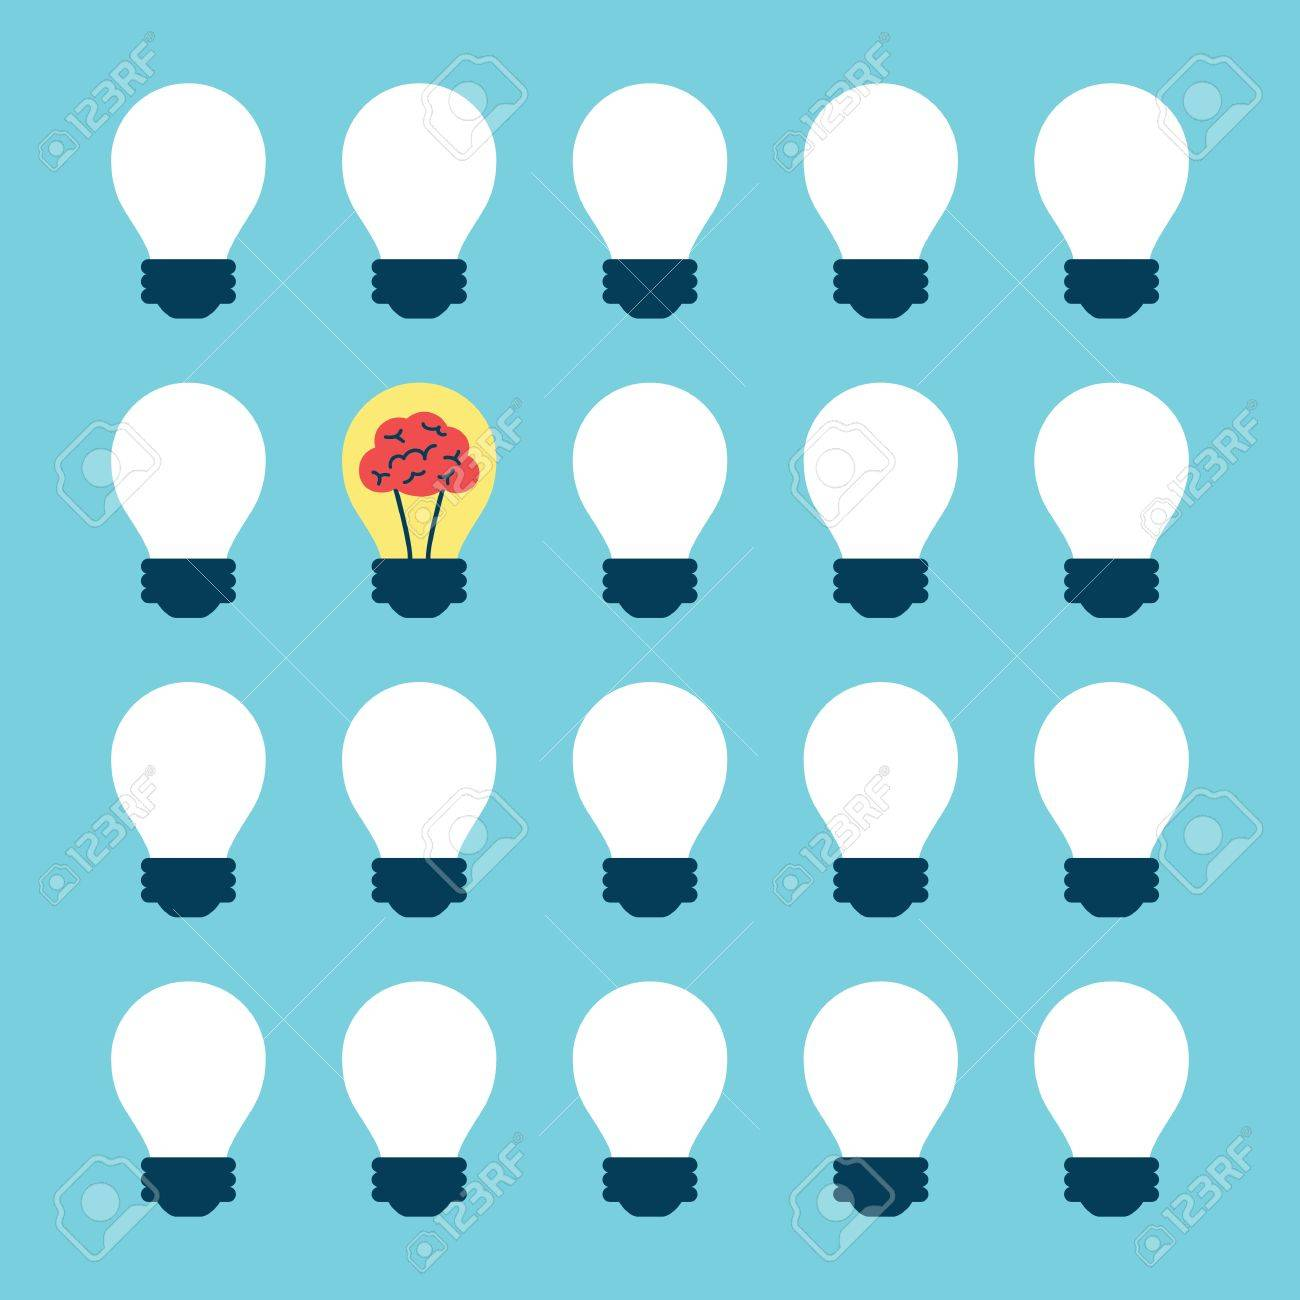 Light Bulb With Brain Pattern, Idea Concept Royalty Free Cliparts ...